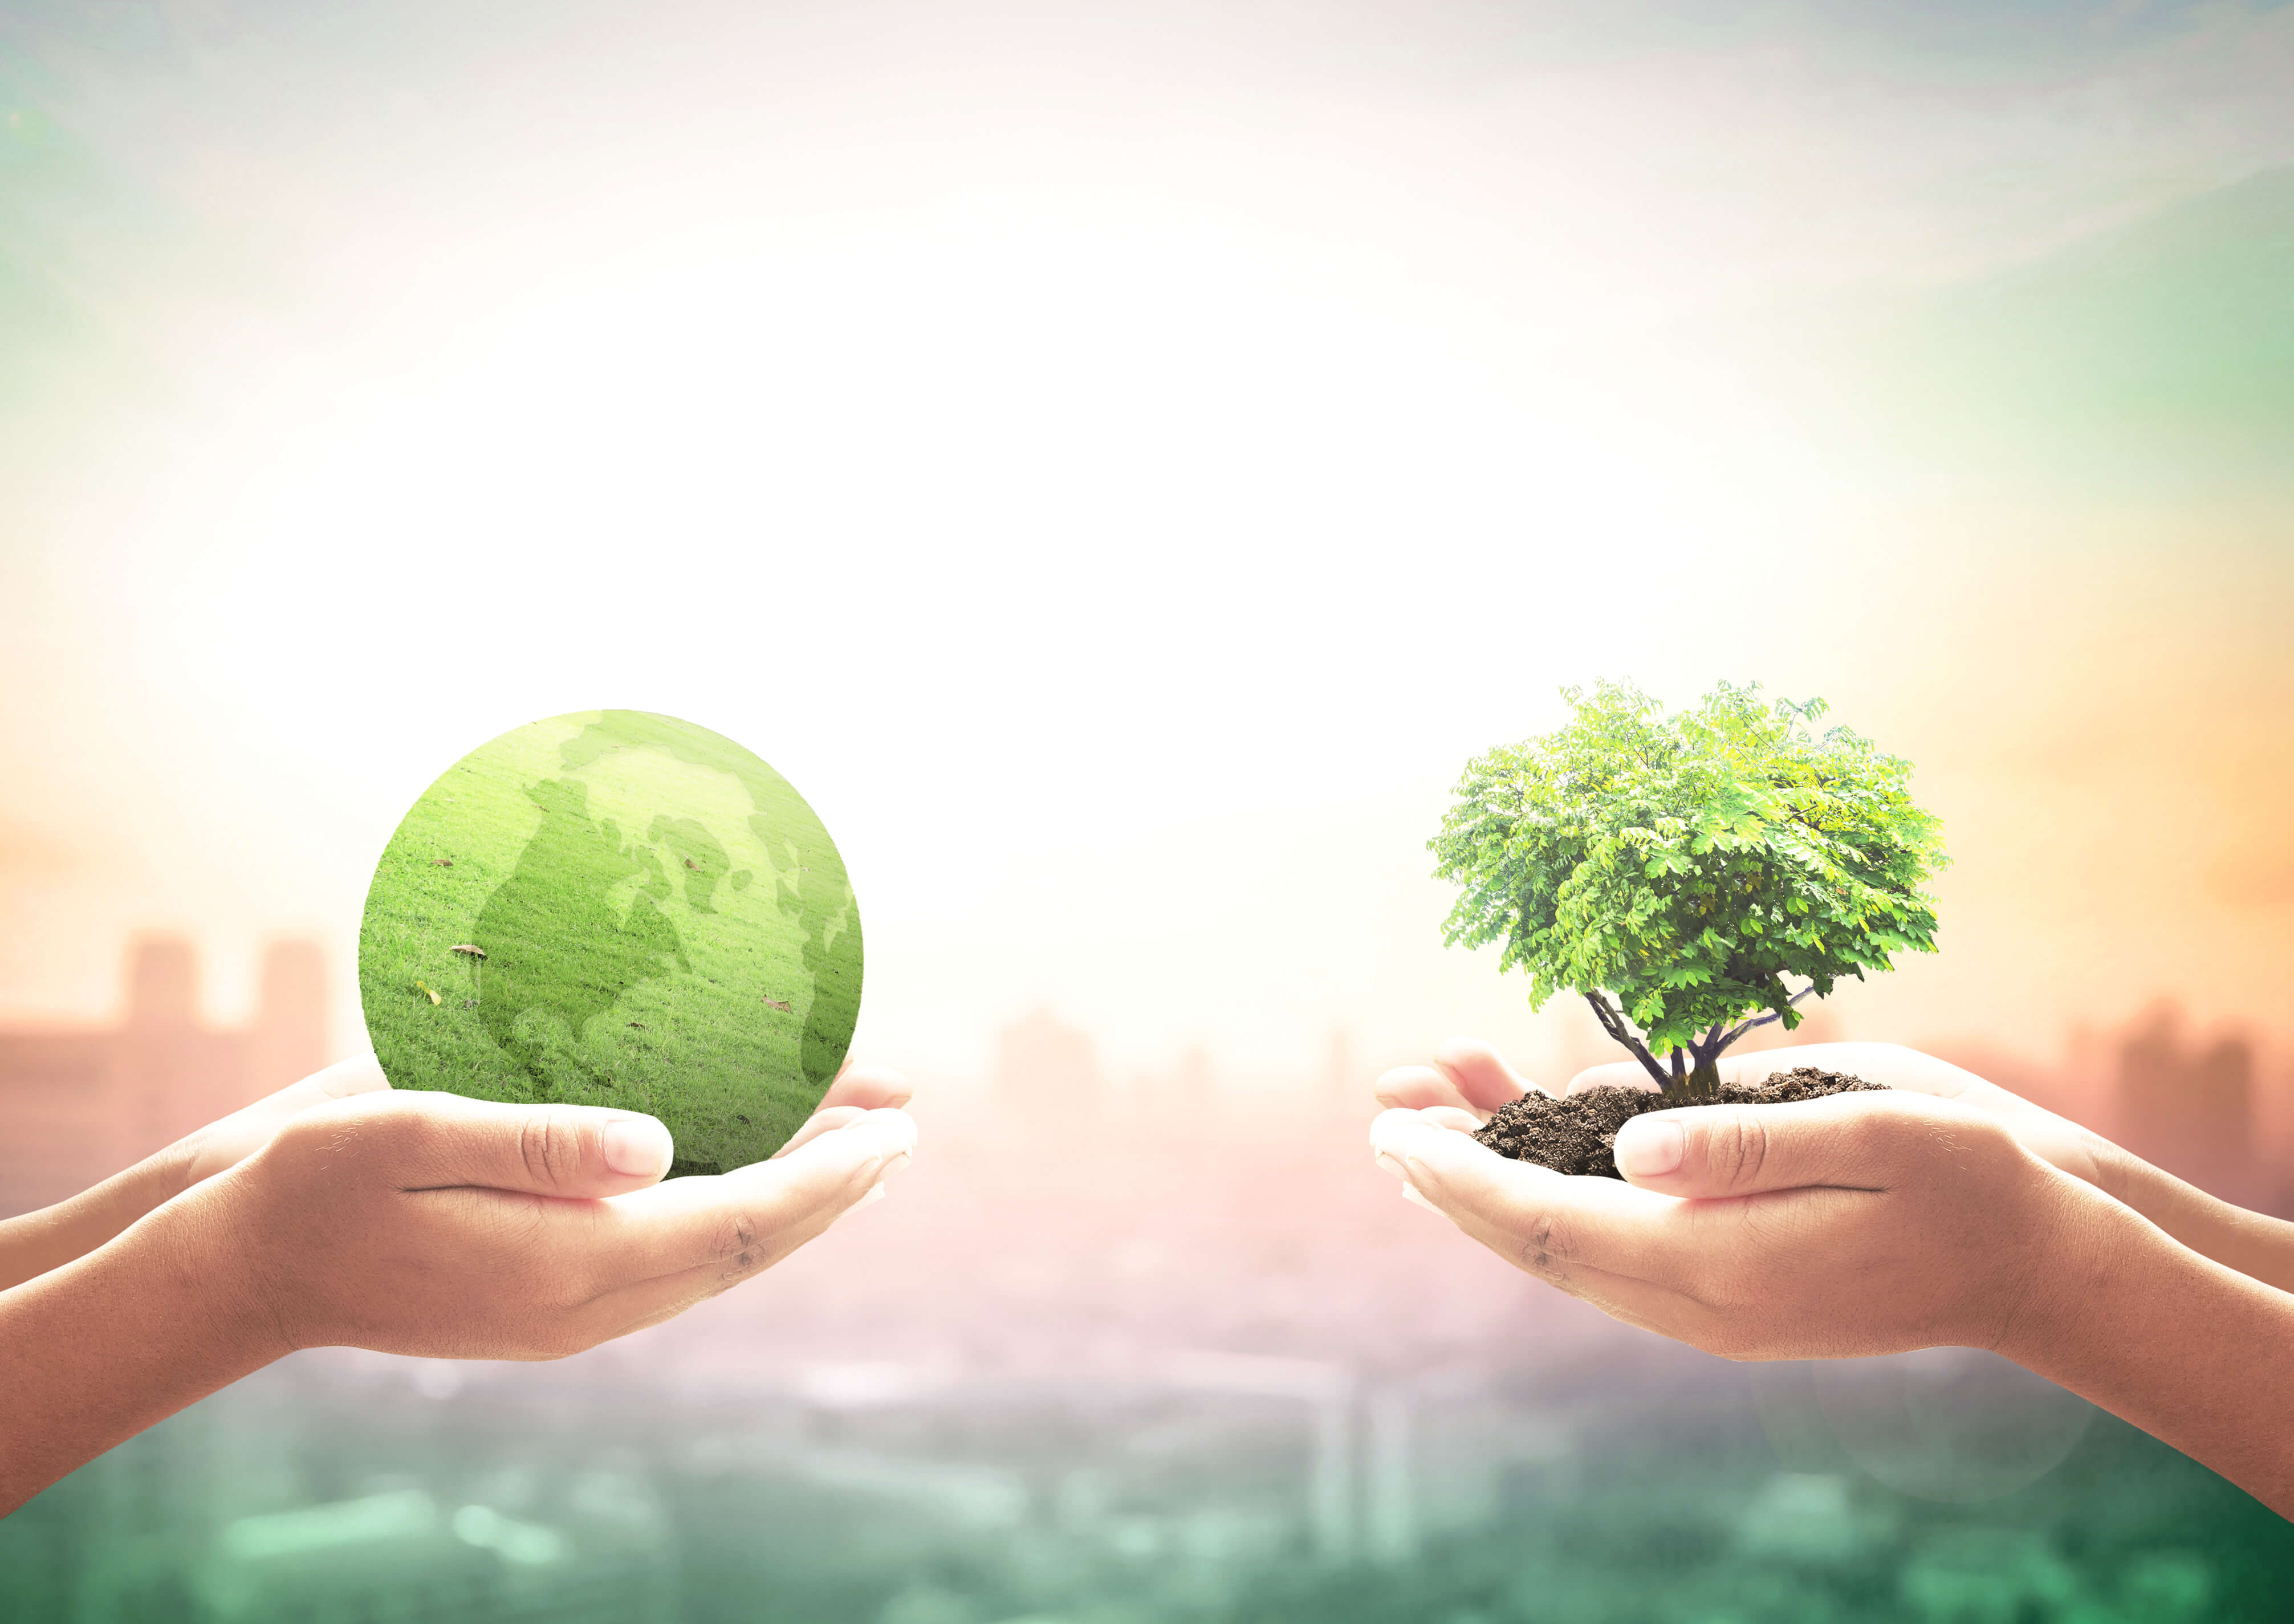 Socially responsible investing: Investing for the future